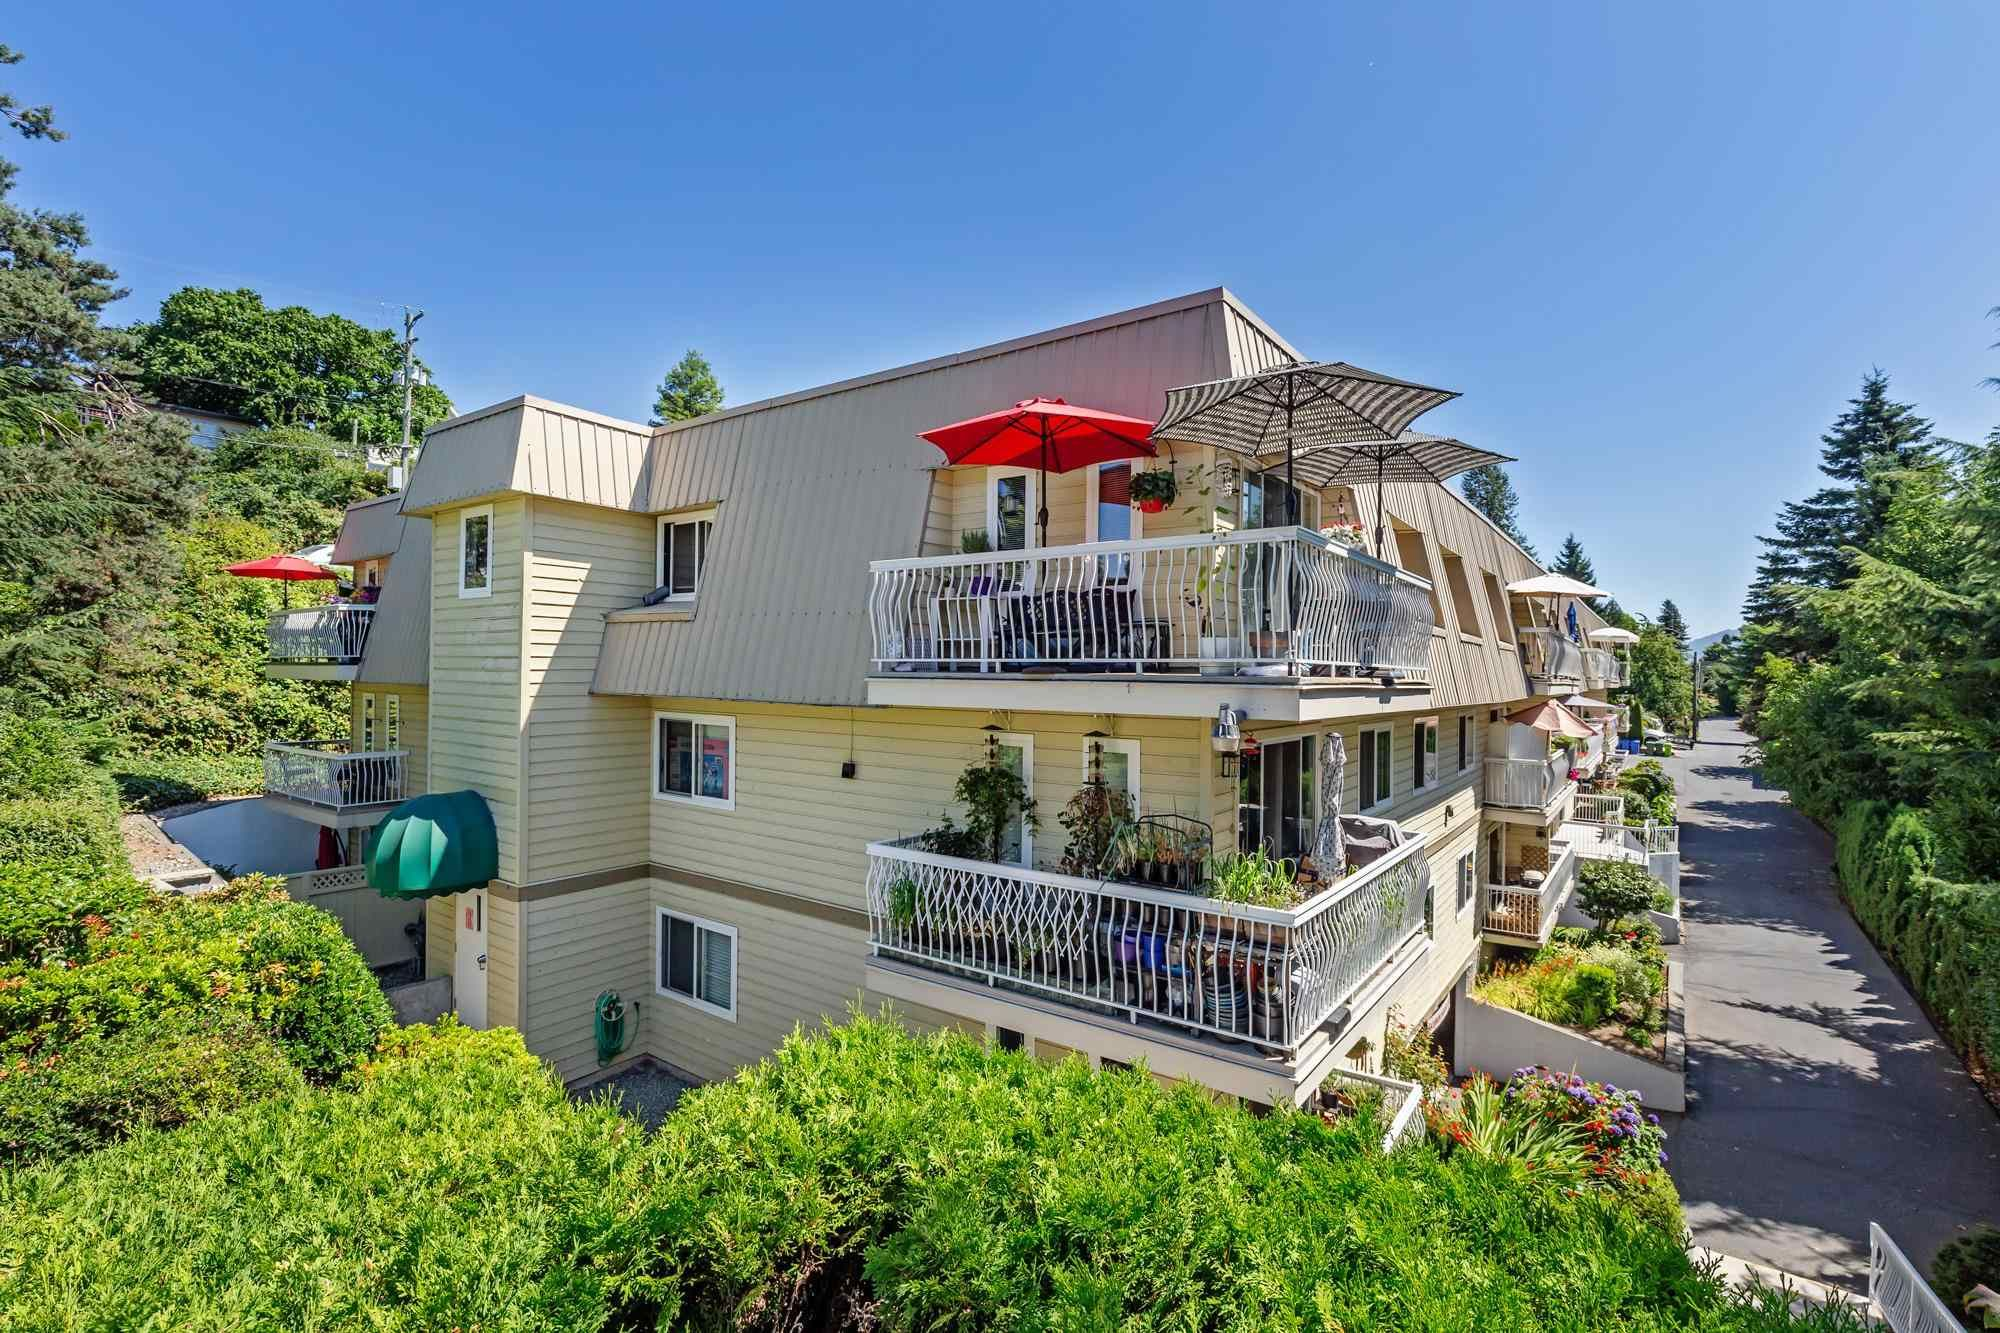 Main Photo: 101 7436 STAVE LAKE Street in Mission: Mission BC Condo for sale : MLS®# R2603469